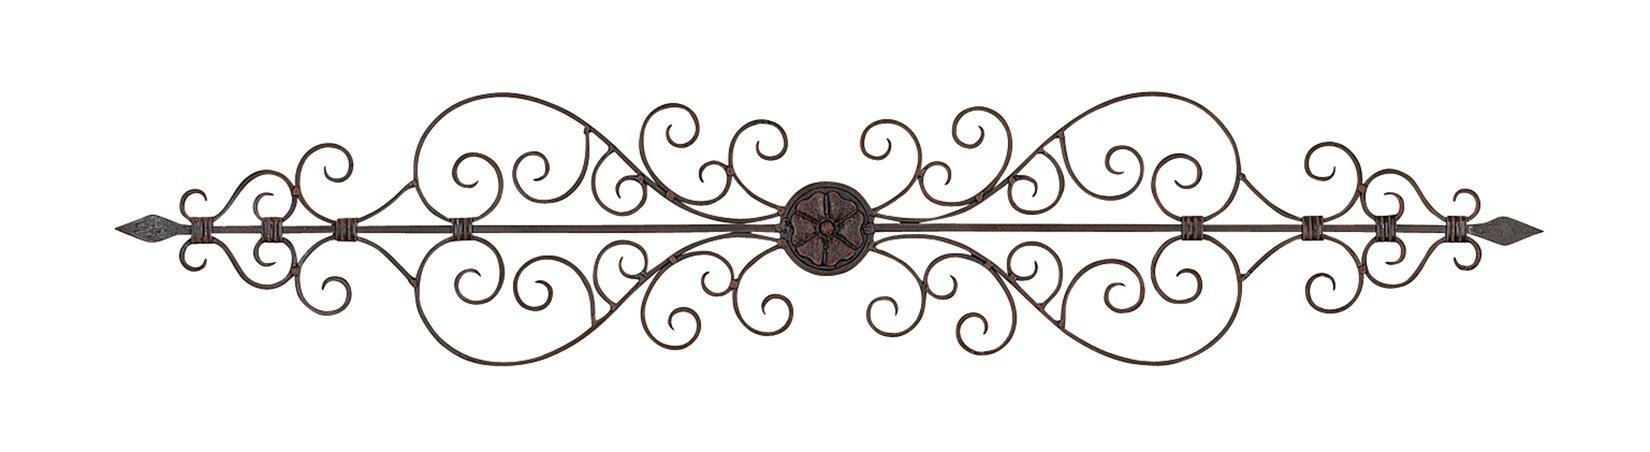 Deco 79 Rustic Floral and Scrolled Metal Wall Decor, 8'' H x 44'' L, Textured Bronze Finish by Deco 79